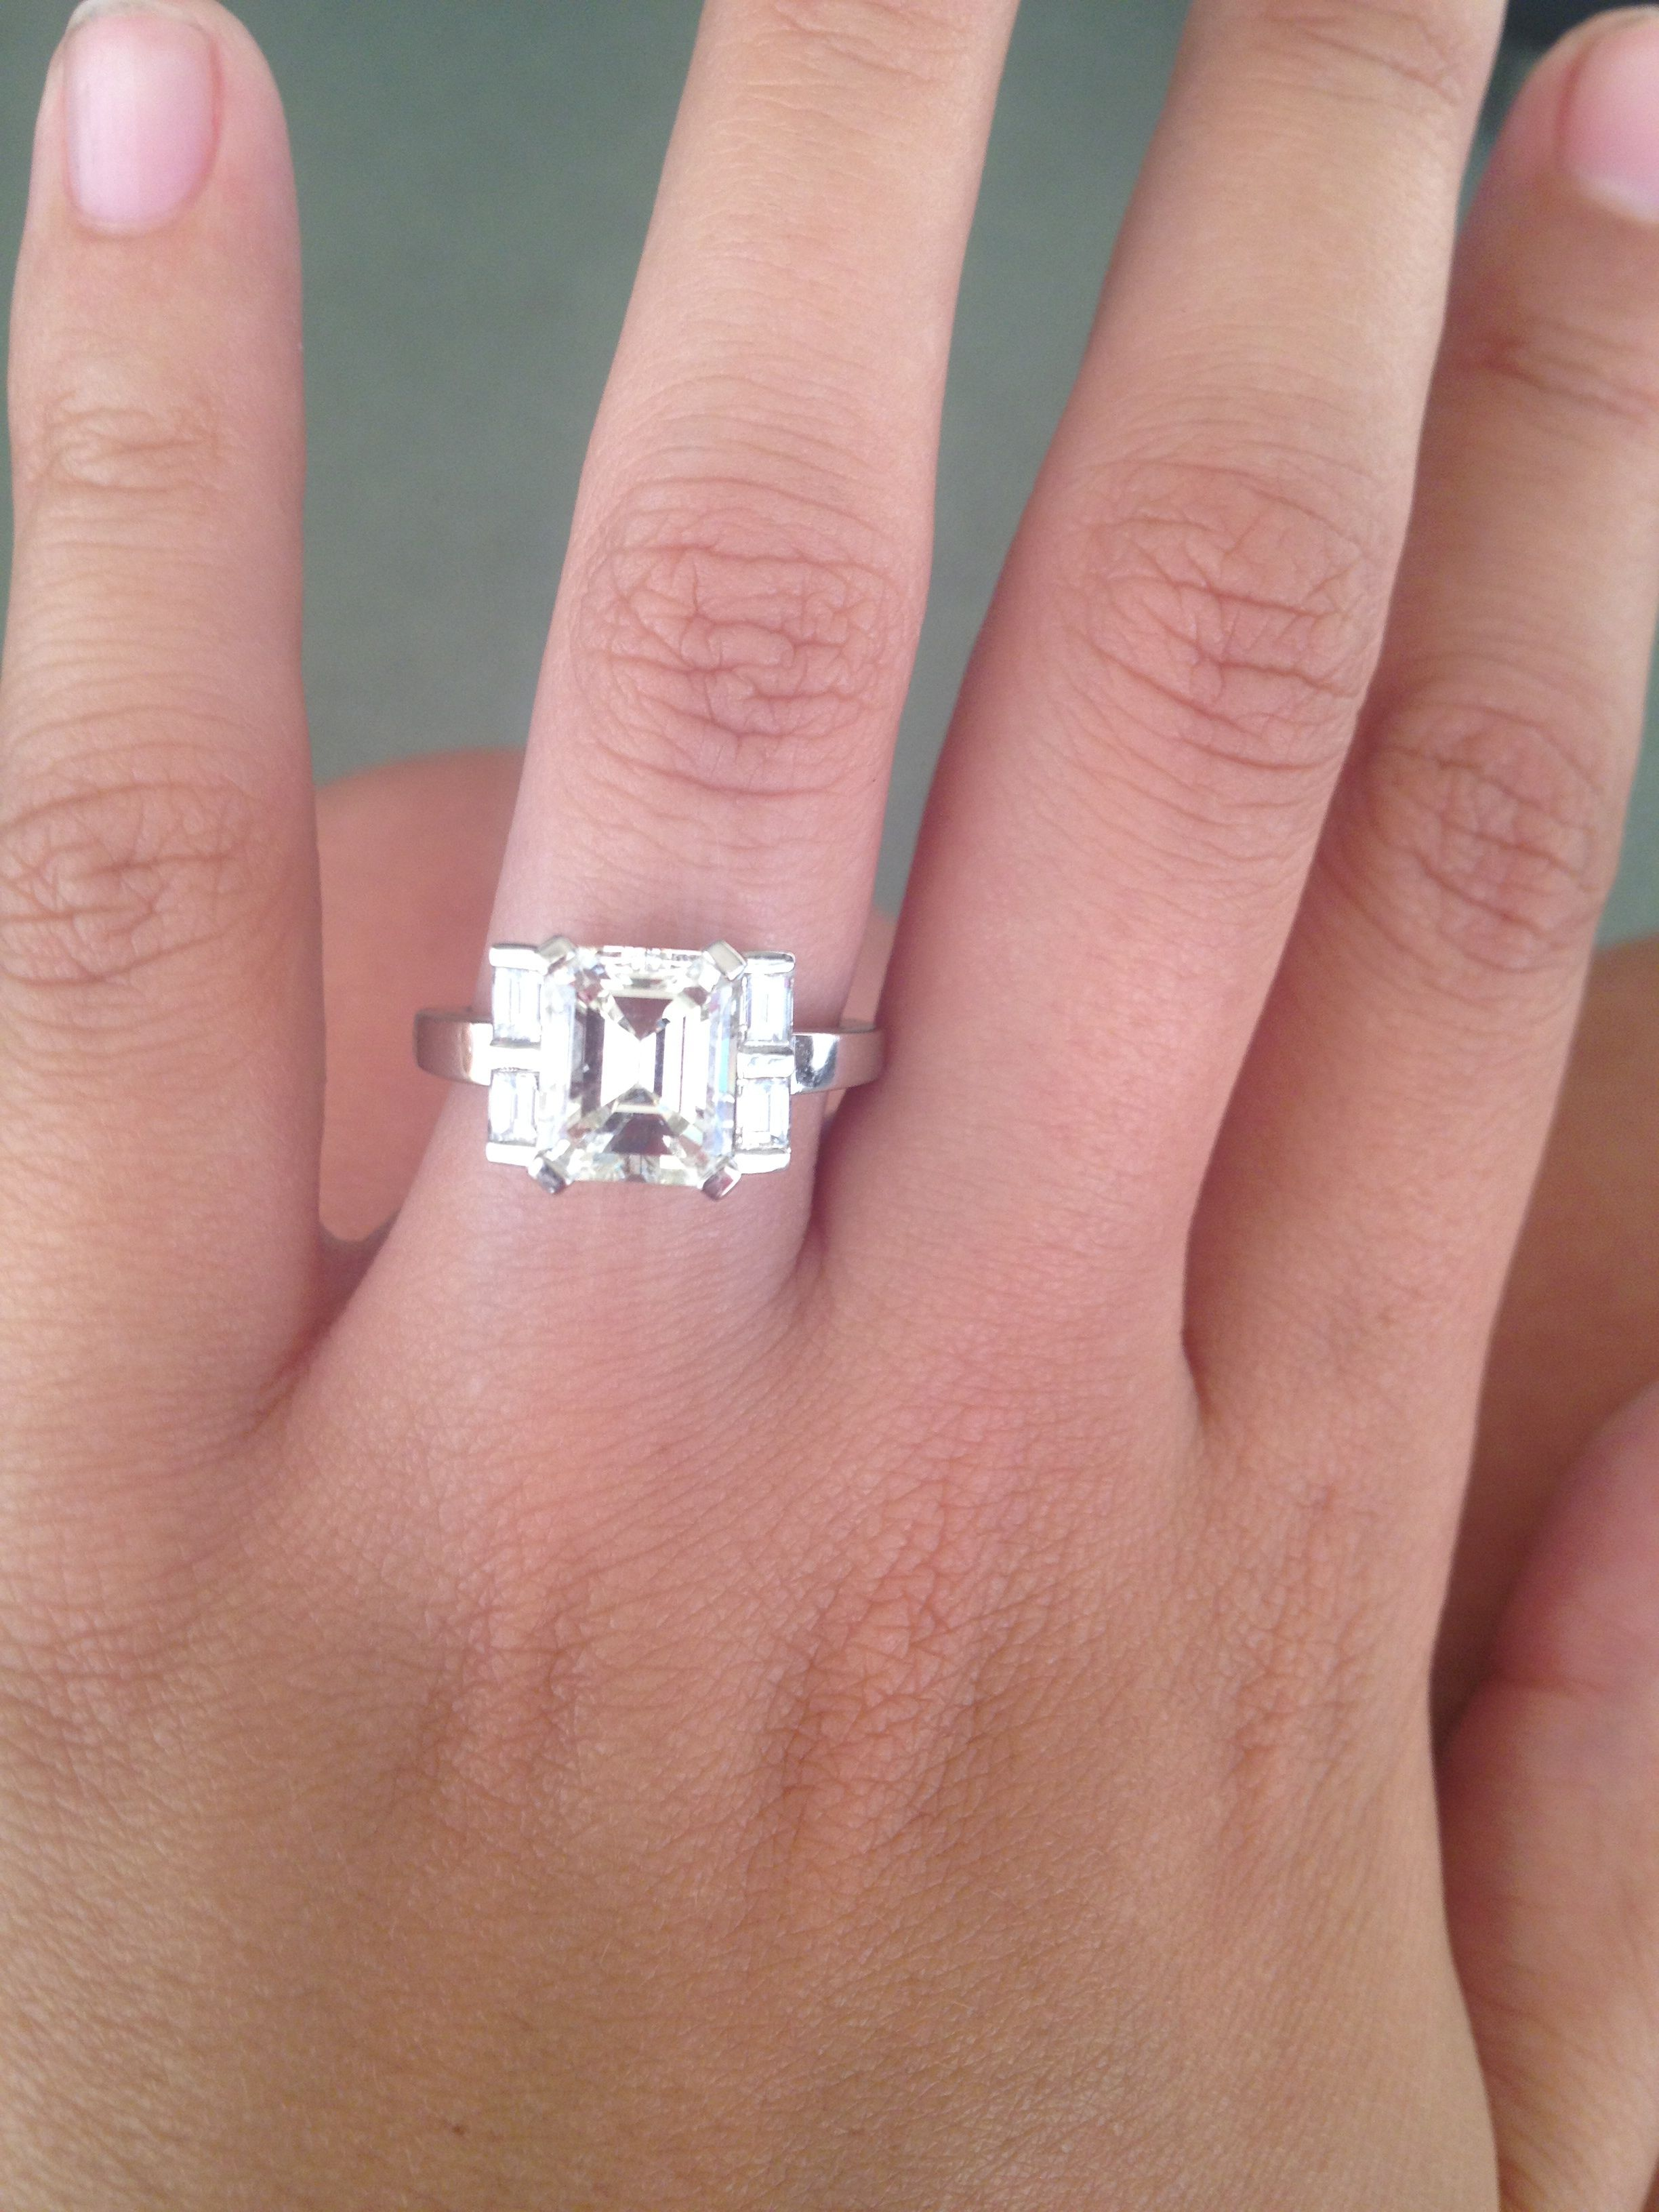 emerald cut engagement ring | Engagement Ring Daily Bling ...